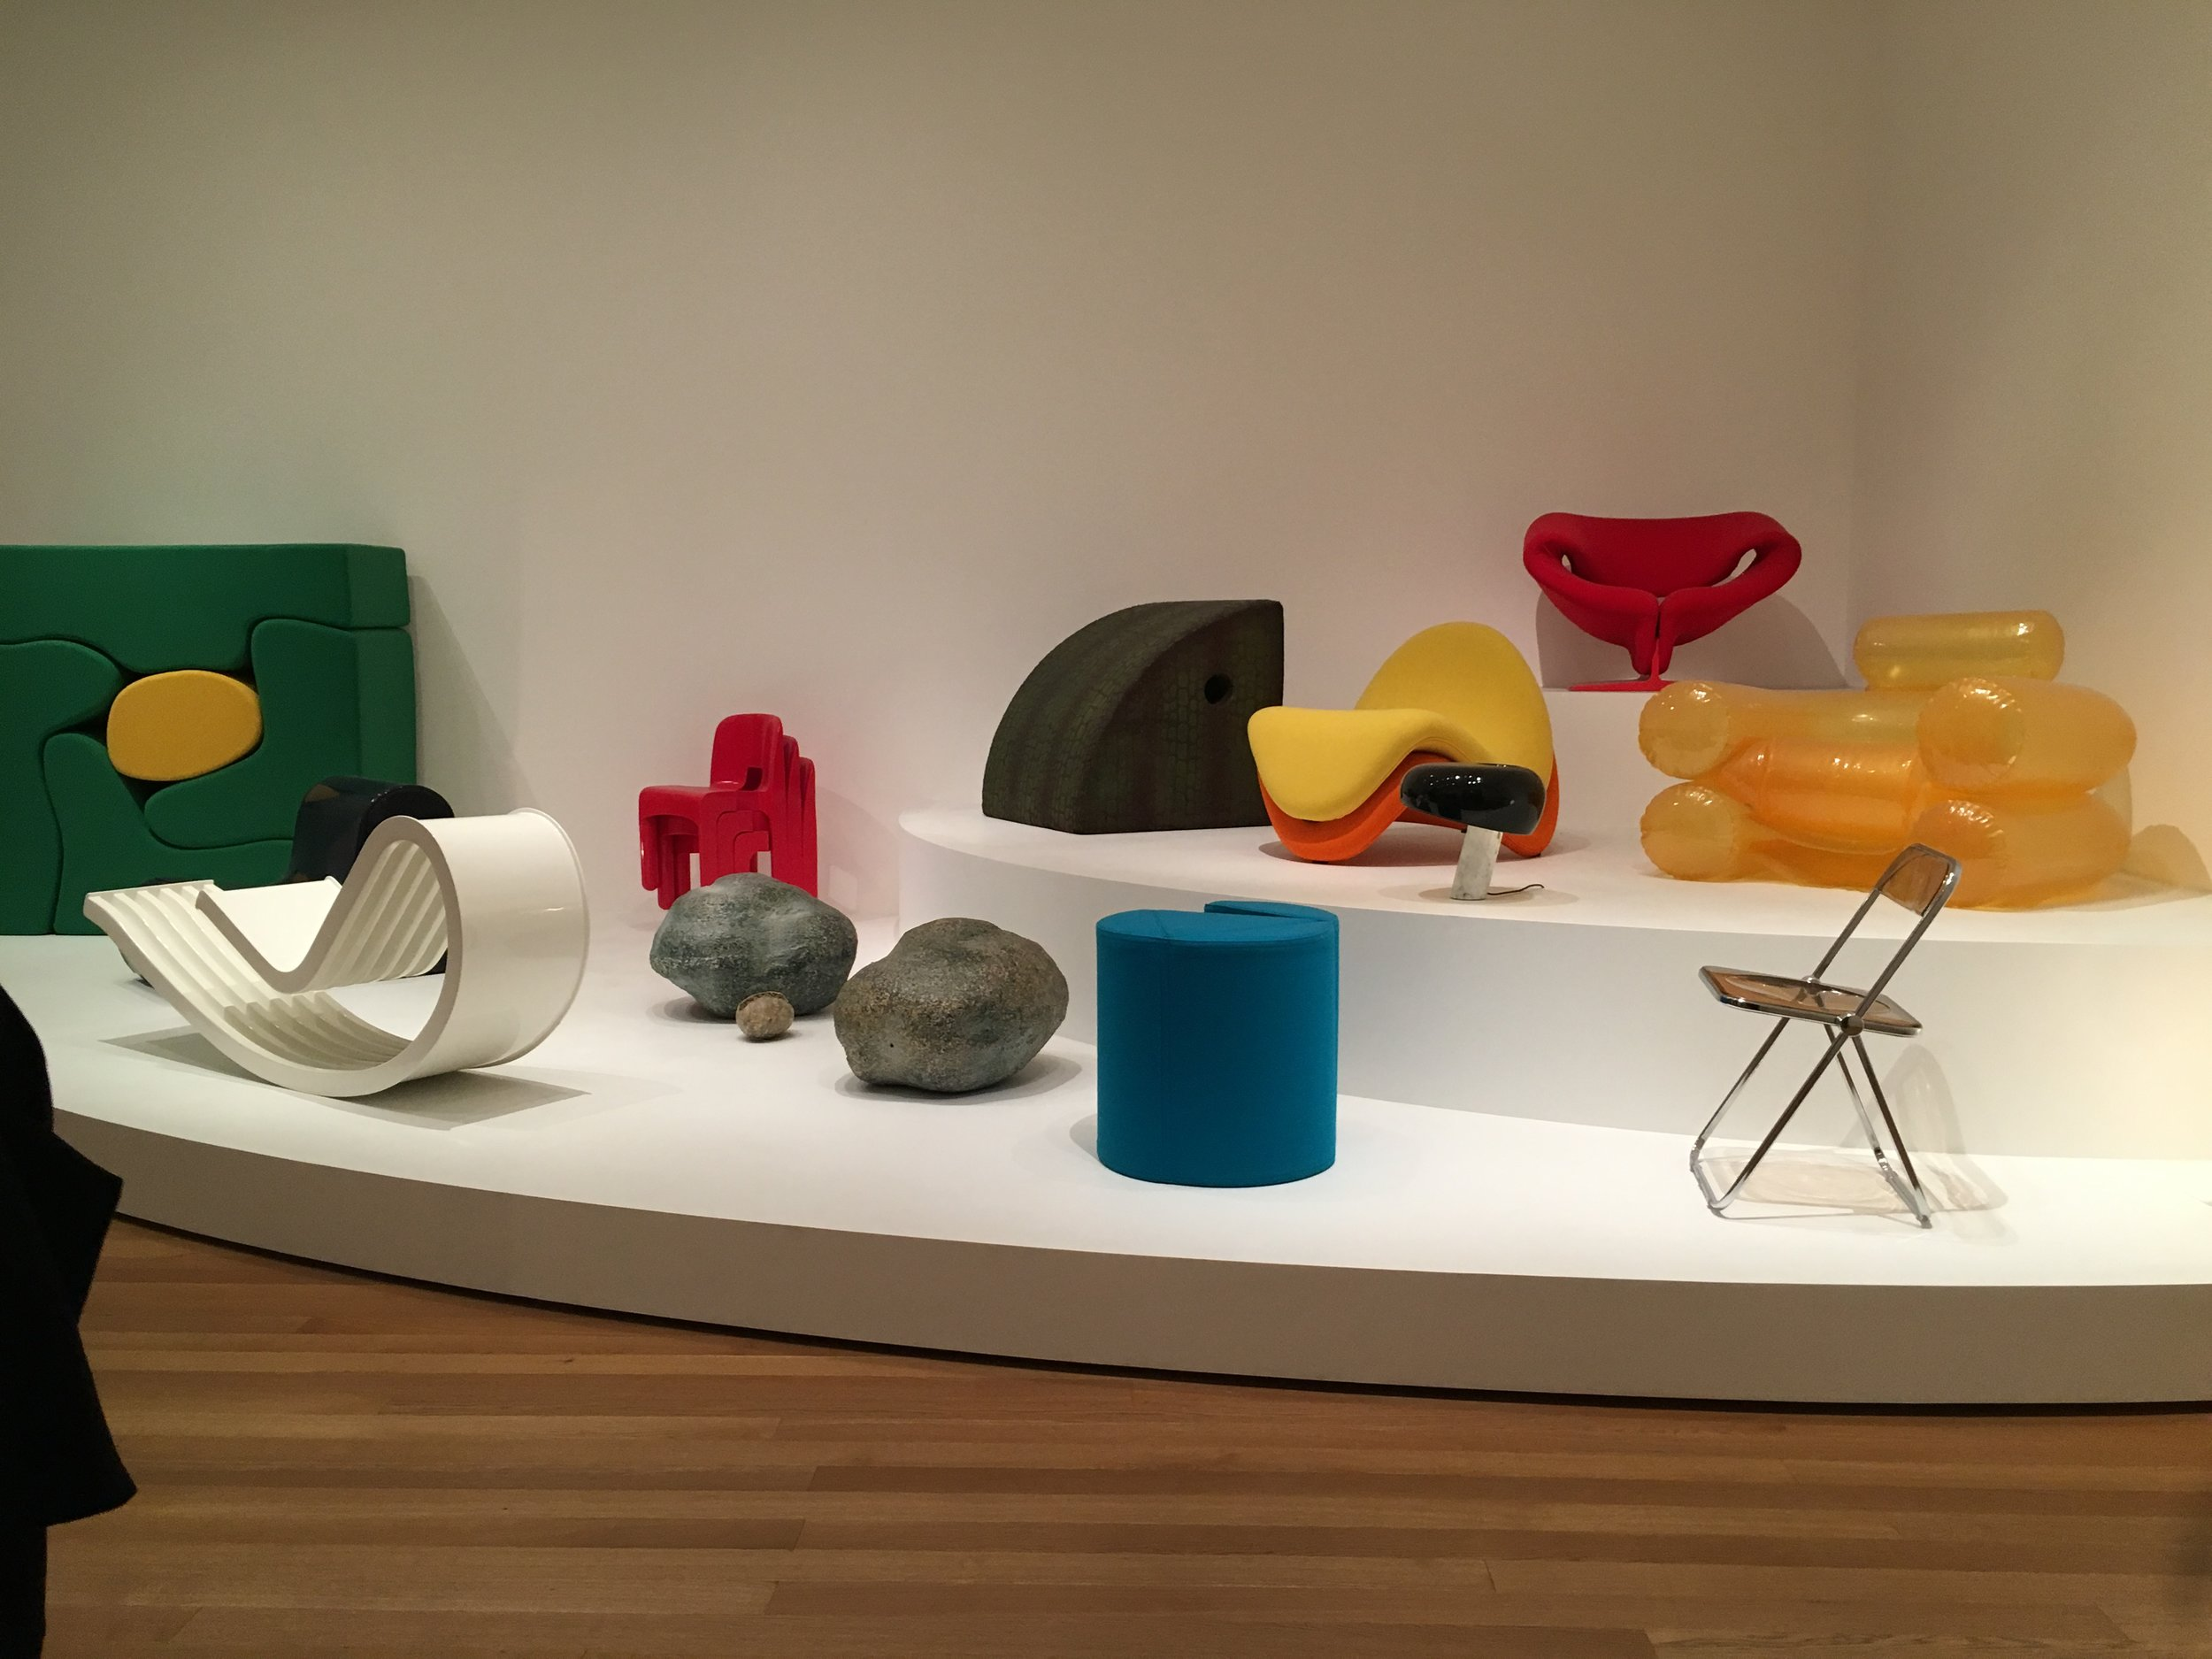 Architecture and Design Collection, 5th Floor, MoMA